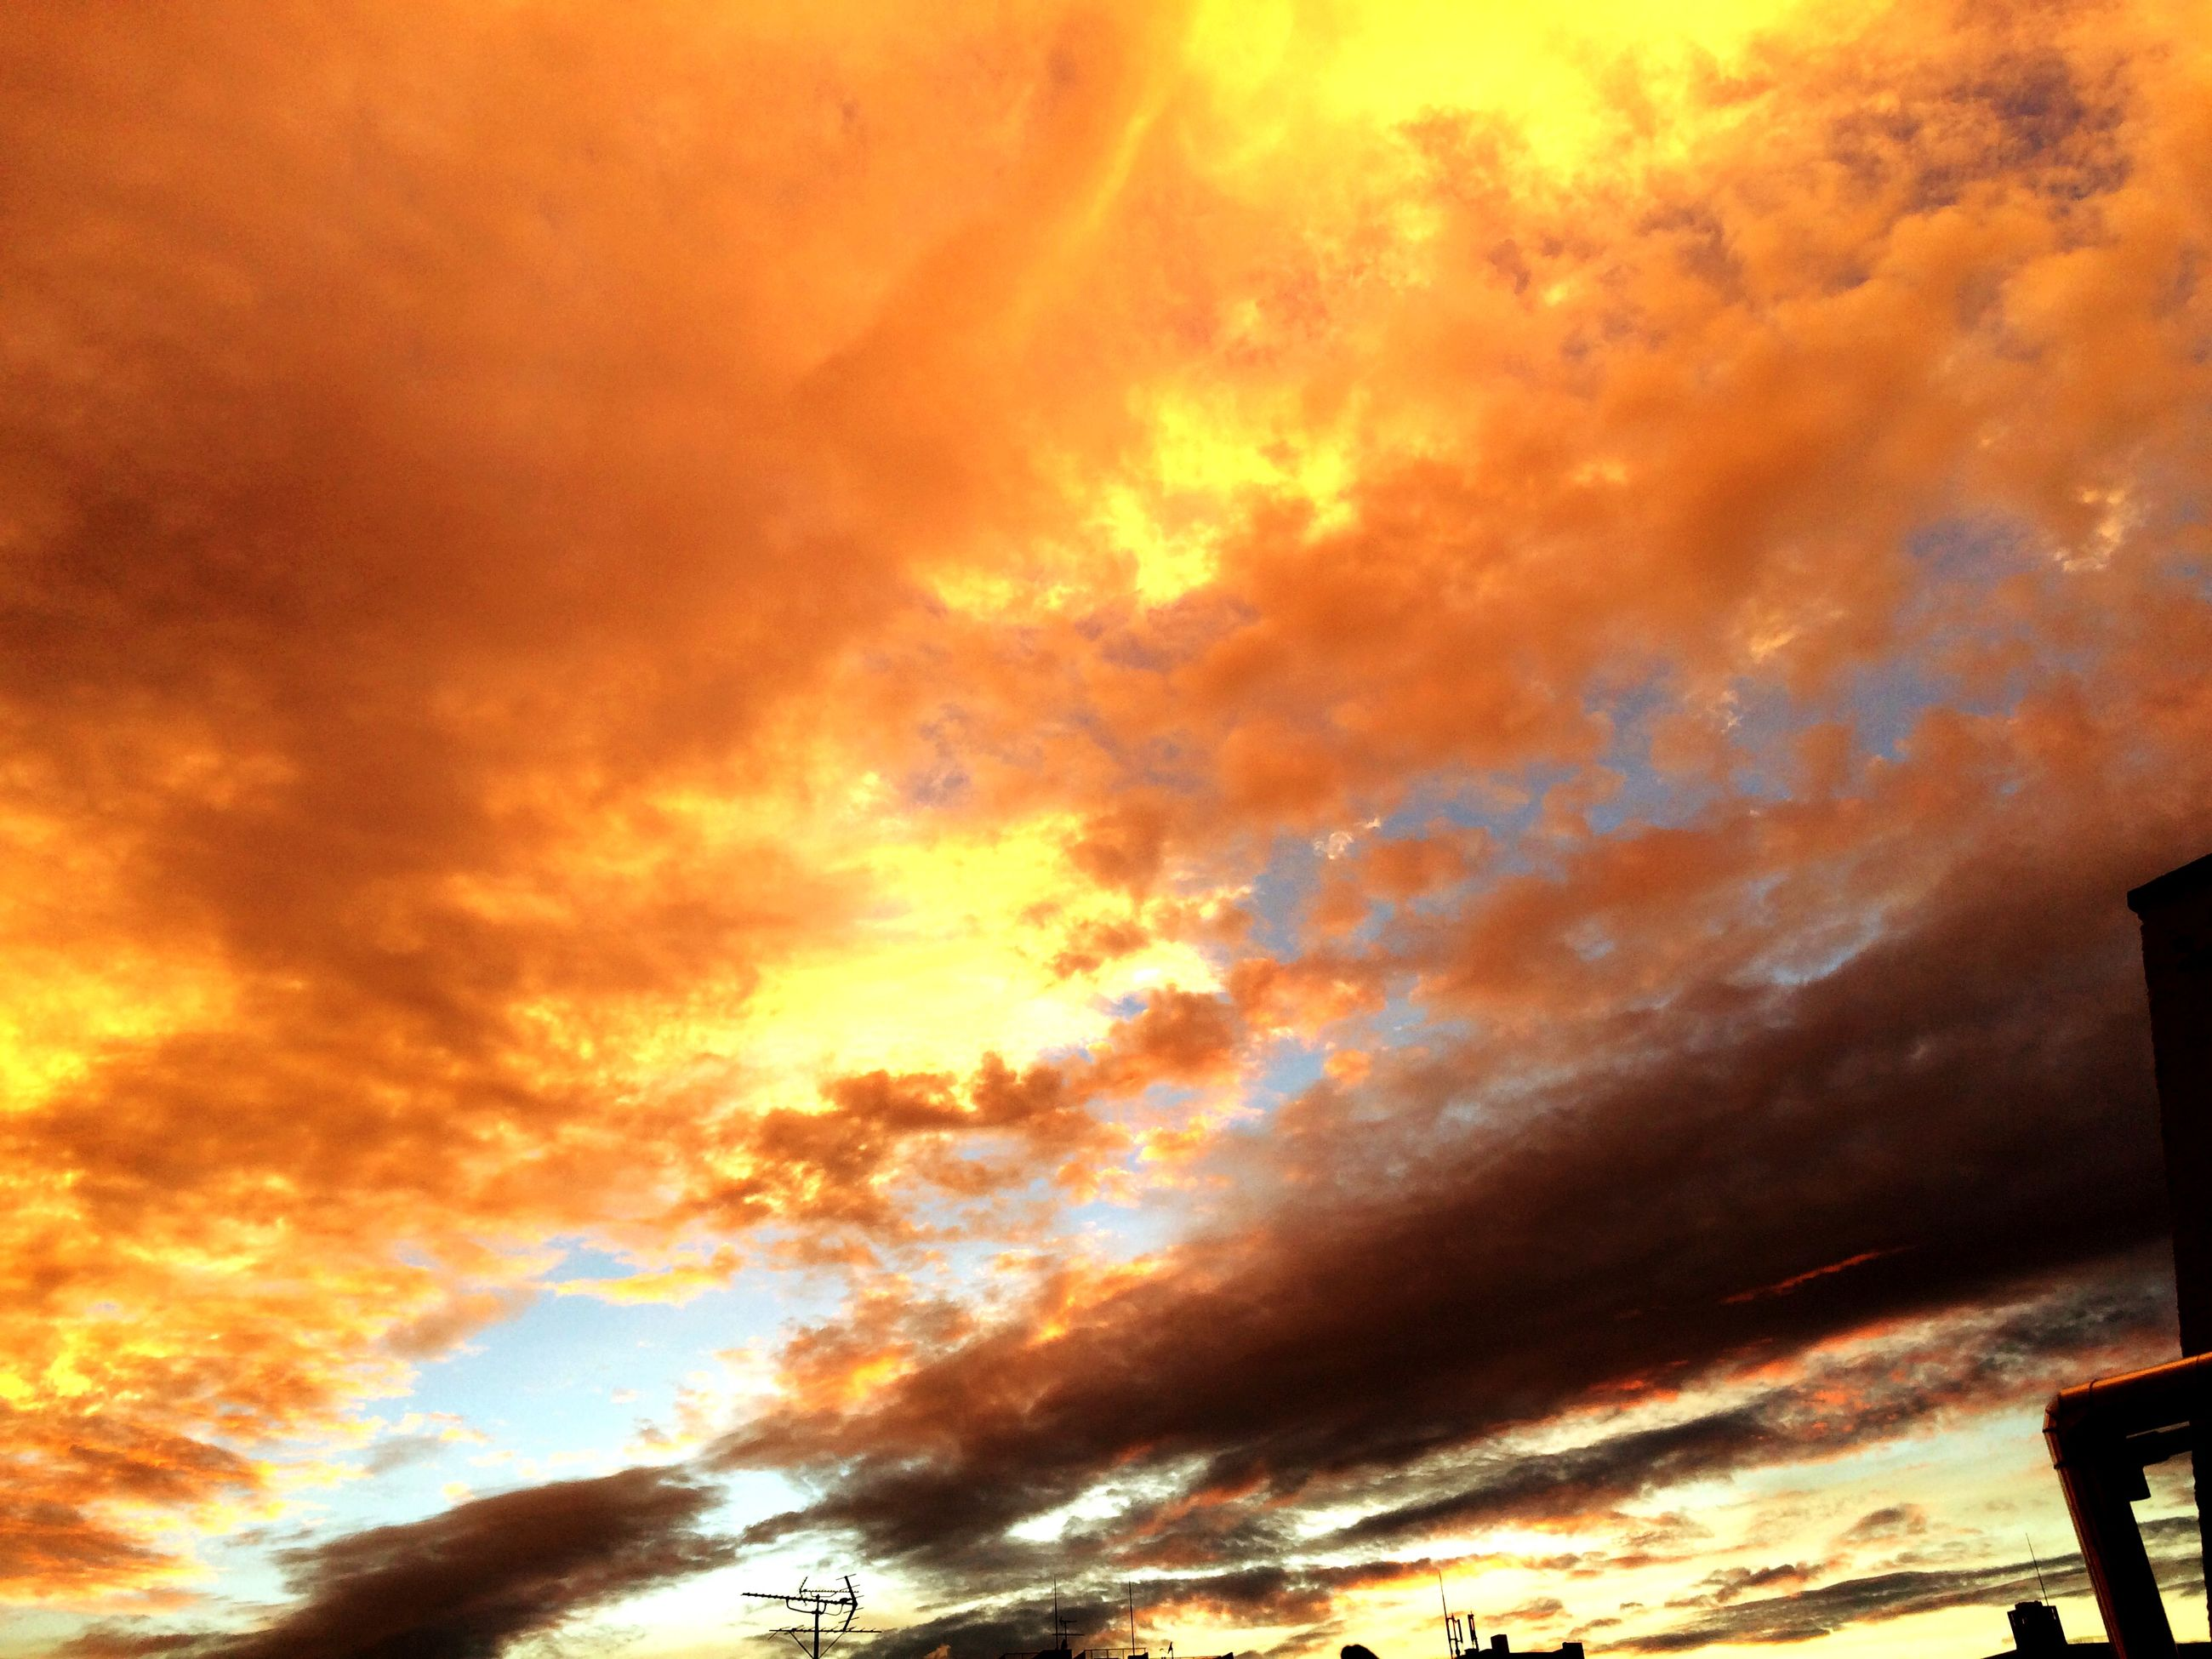 low angle view, sunset, sky, cloud - sky, orange color, cloudy, dramatic sky, beauty in nature, silhouette, scenics, cloud, tranquility, nature, idyllic, outdoors, built structure, tranquil scene, no people, weather, architecture